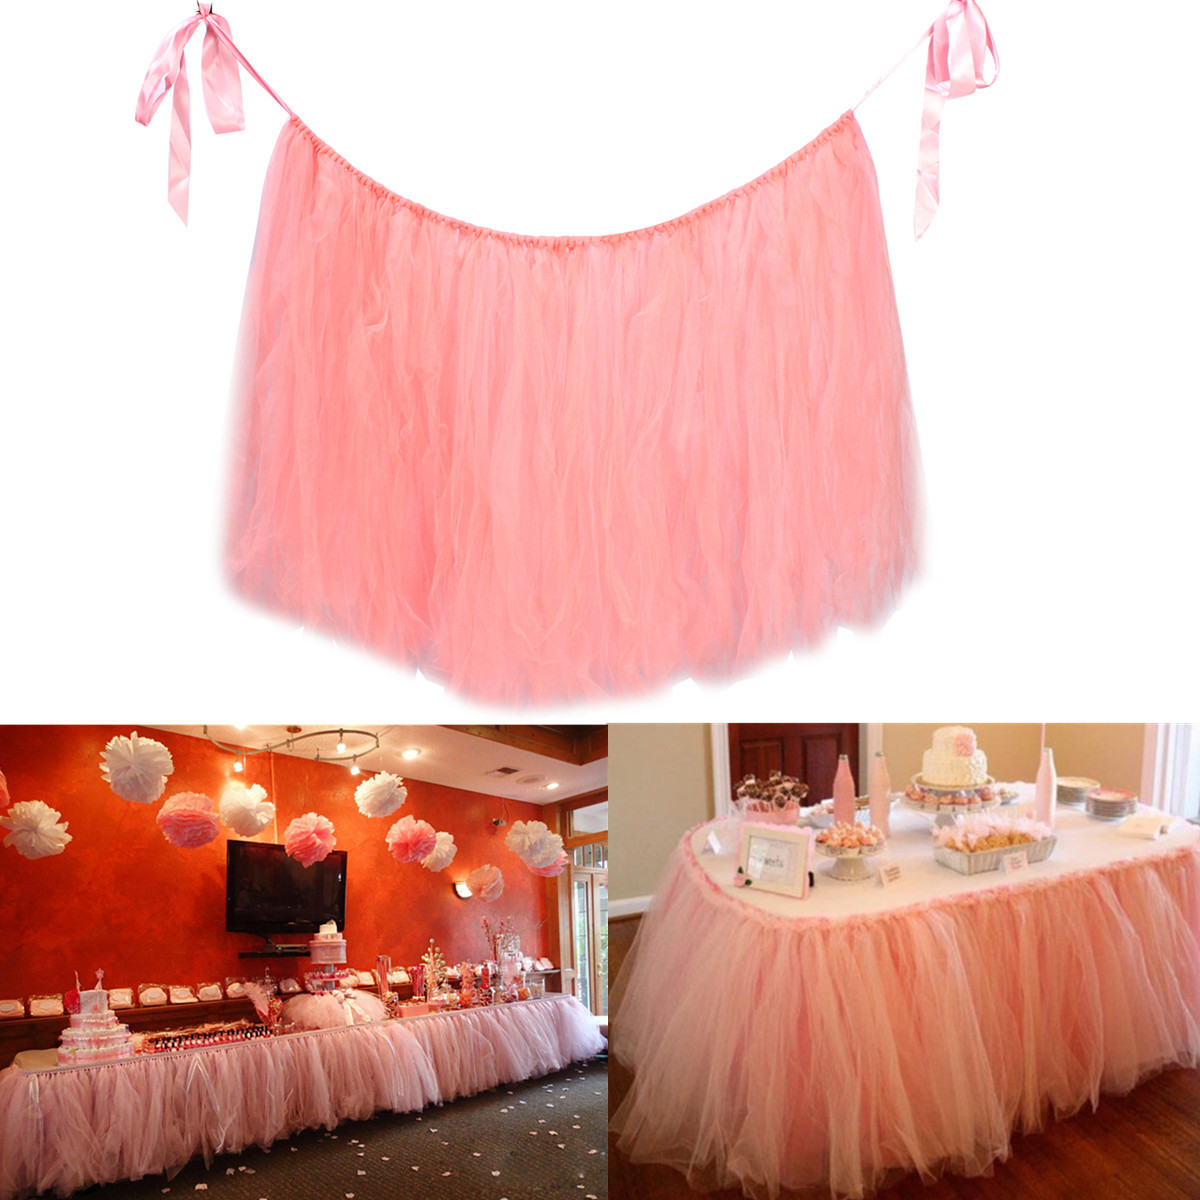 Pink 80*100cm Tulle Tutu Table Skirt Wedding Birthday Baby